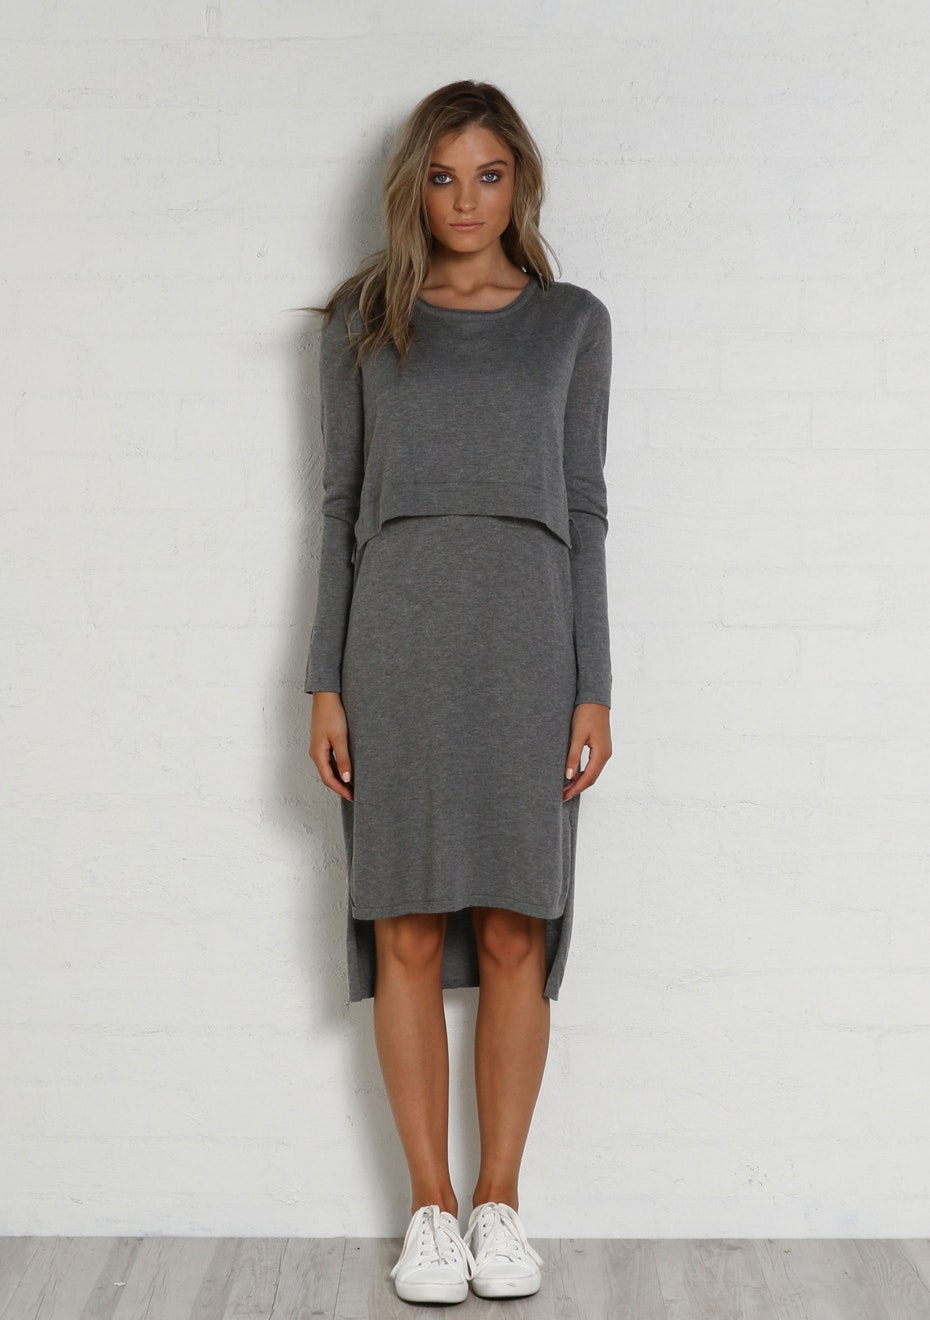 Madison - HANA DRESS - CHARCOAL